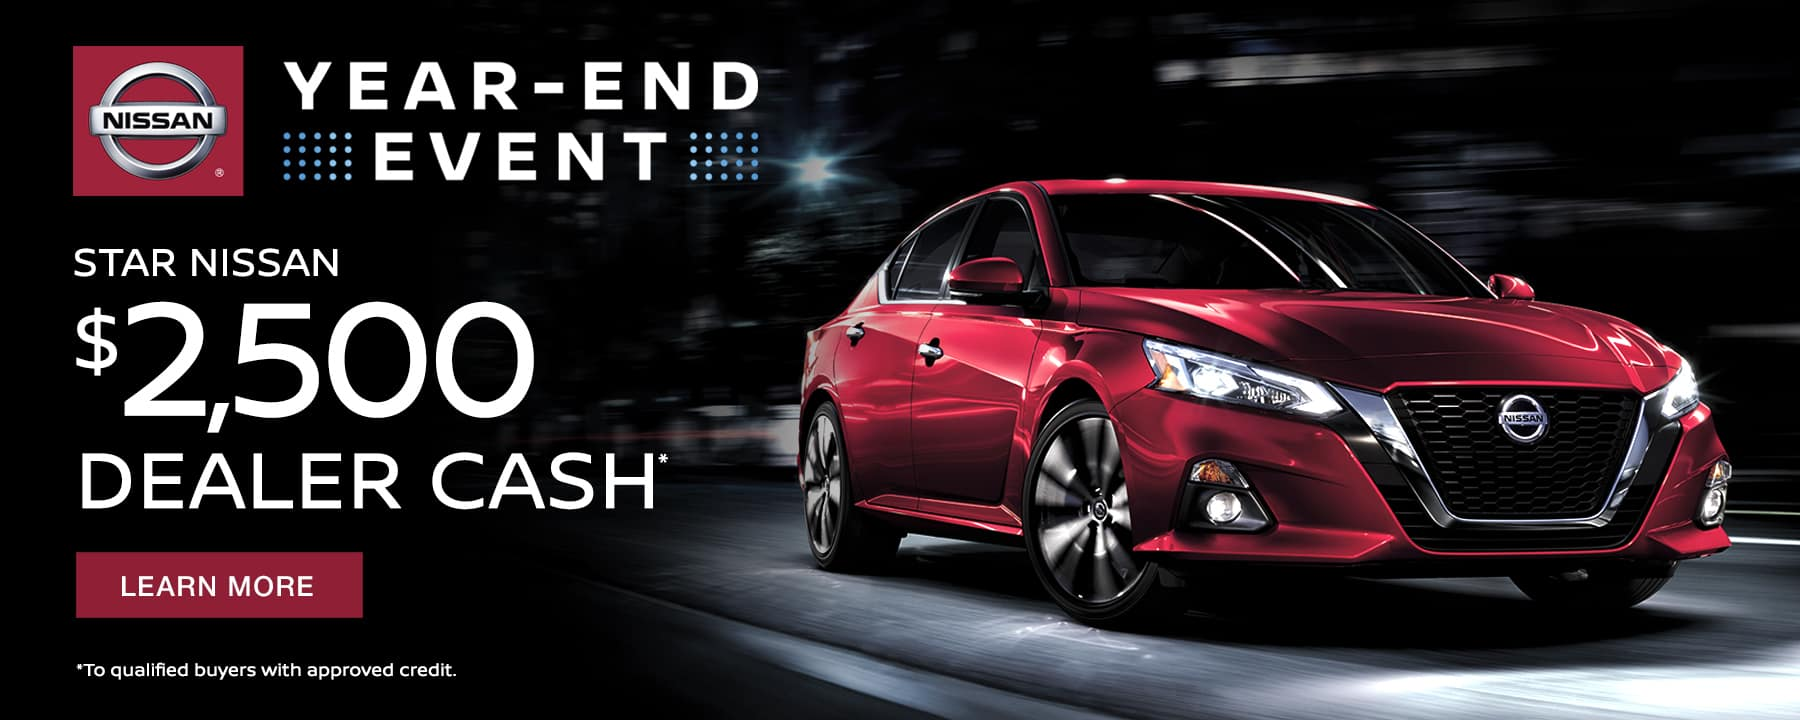 Get up to $2,500 Dealer Cash during our Year-End Event at Star Nissan!